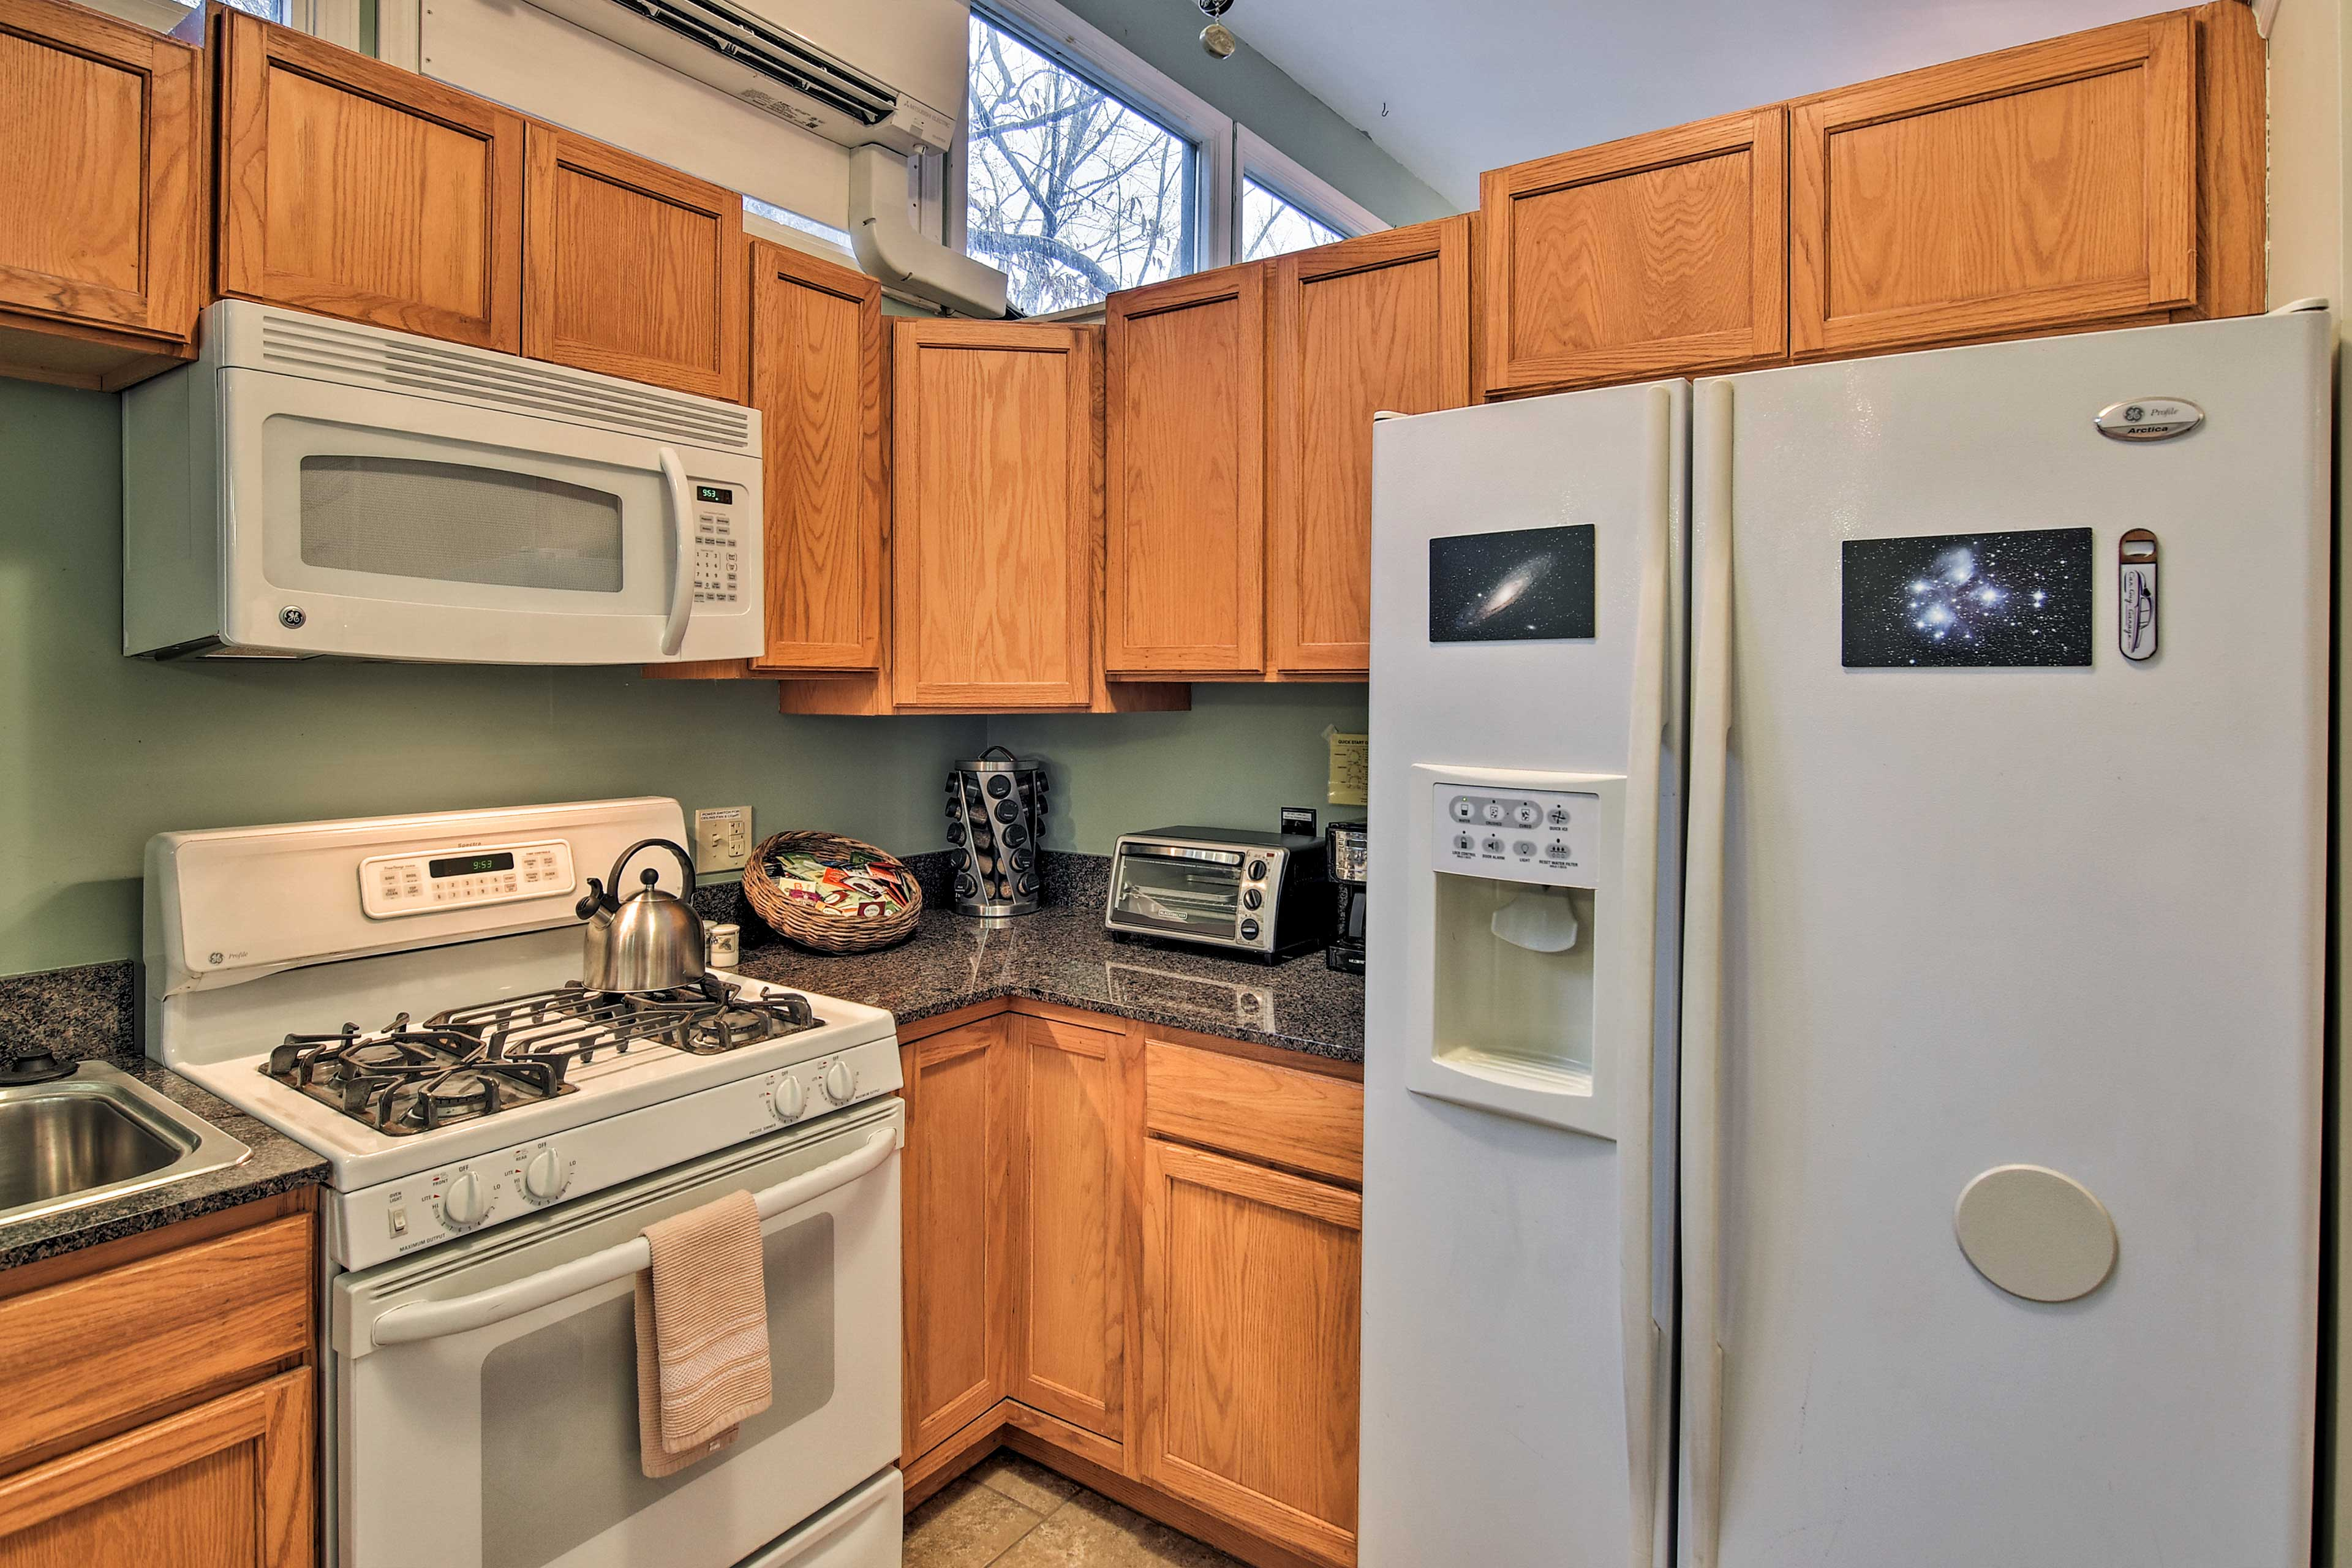 Bring your furry friend to this pet-friendly apartment to explore with you!